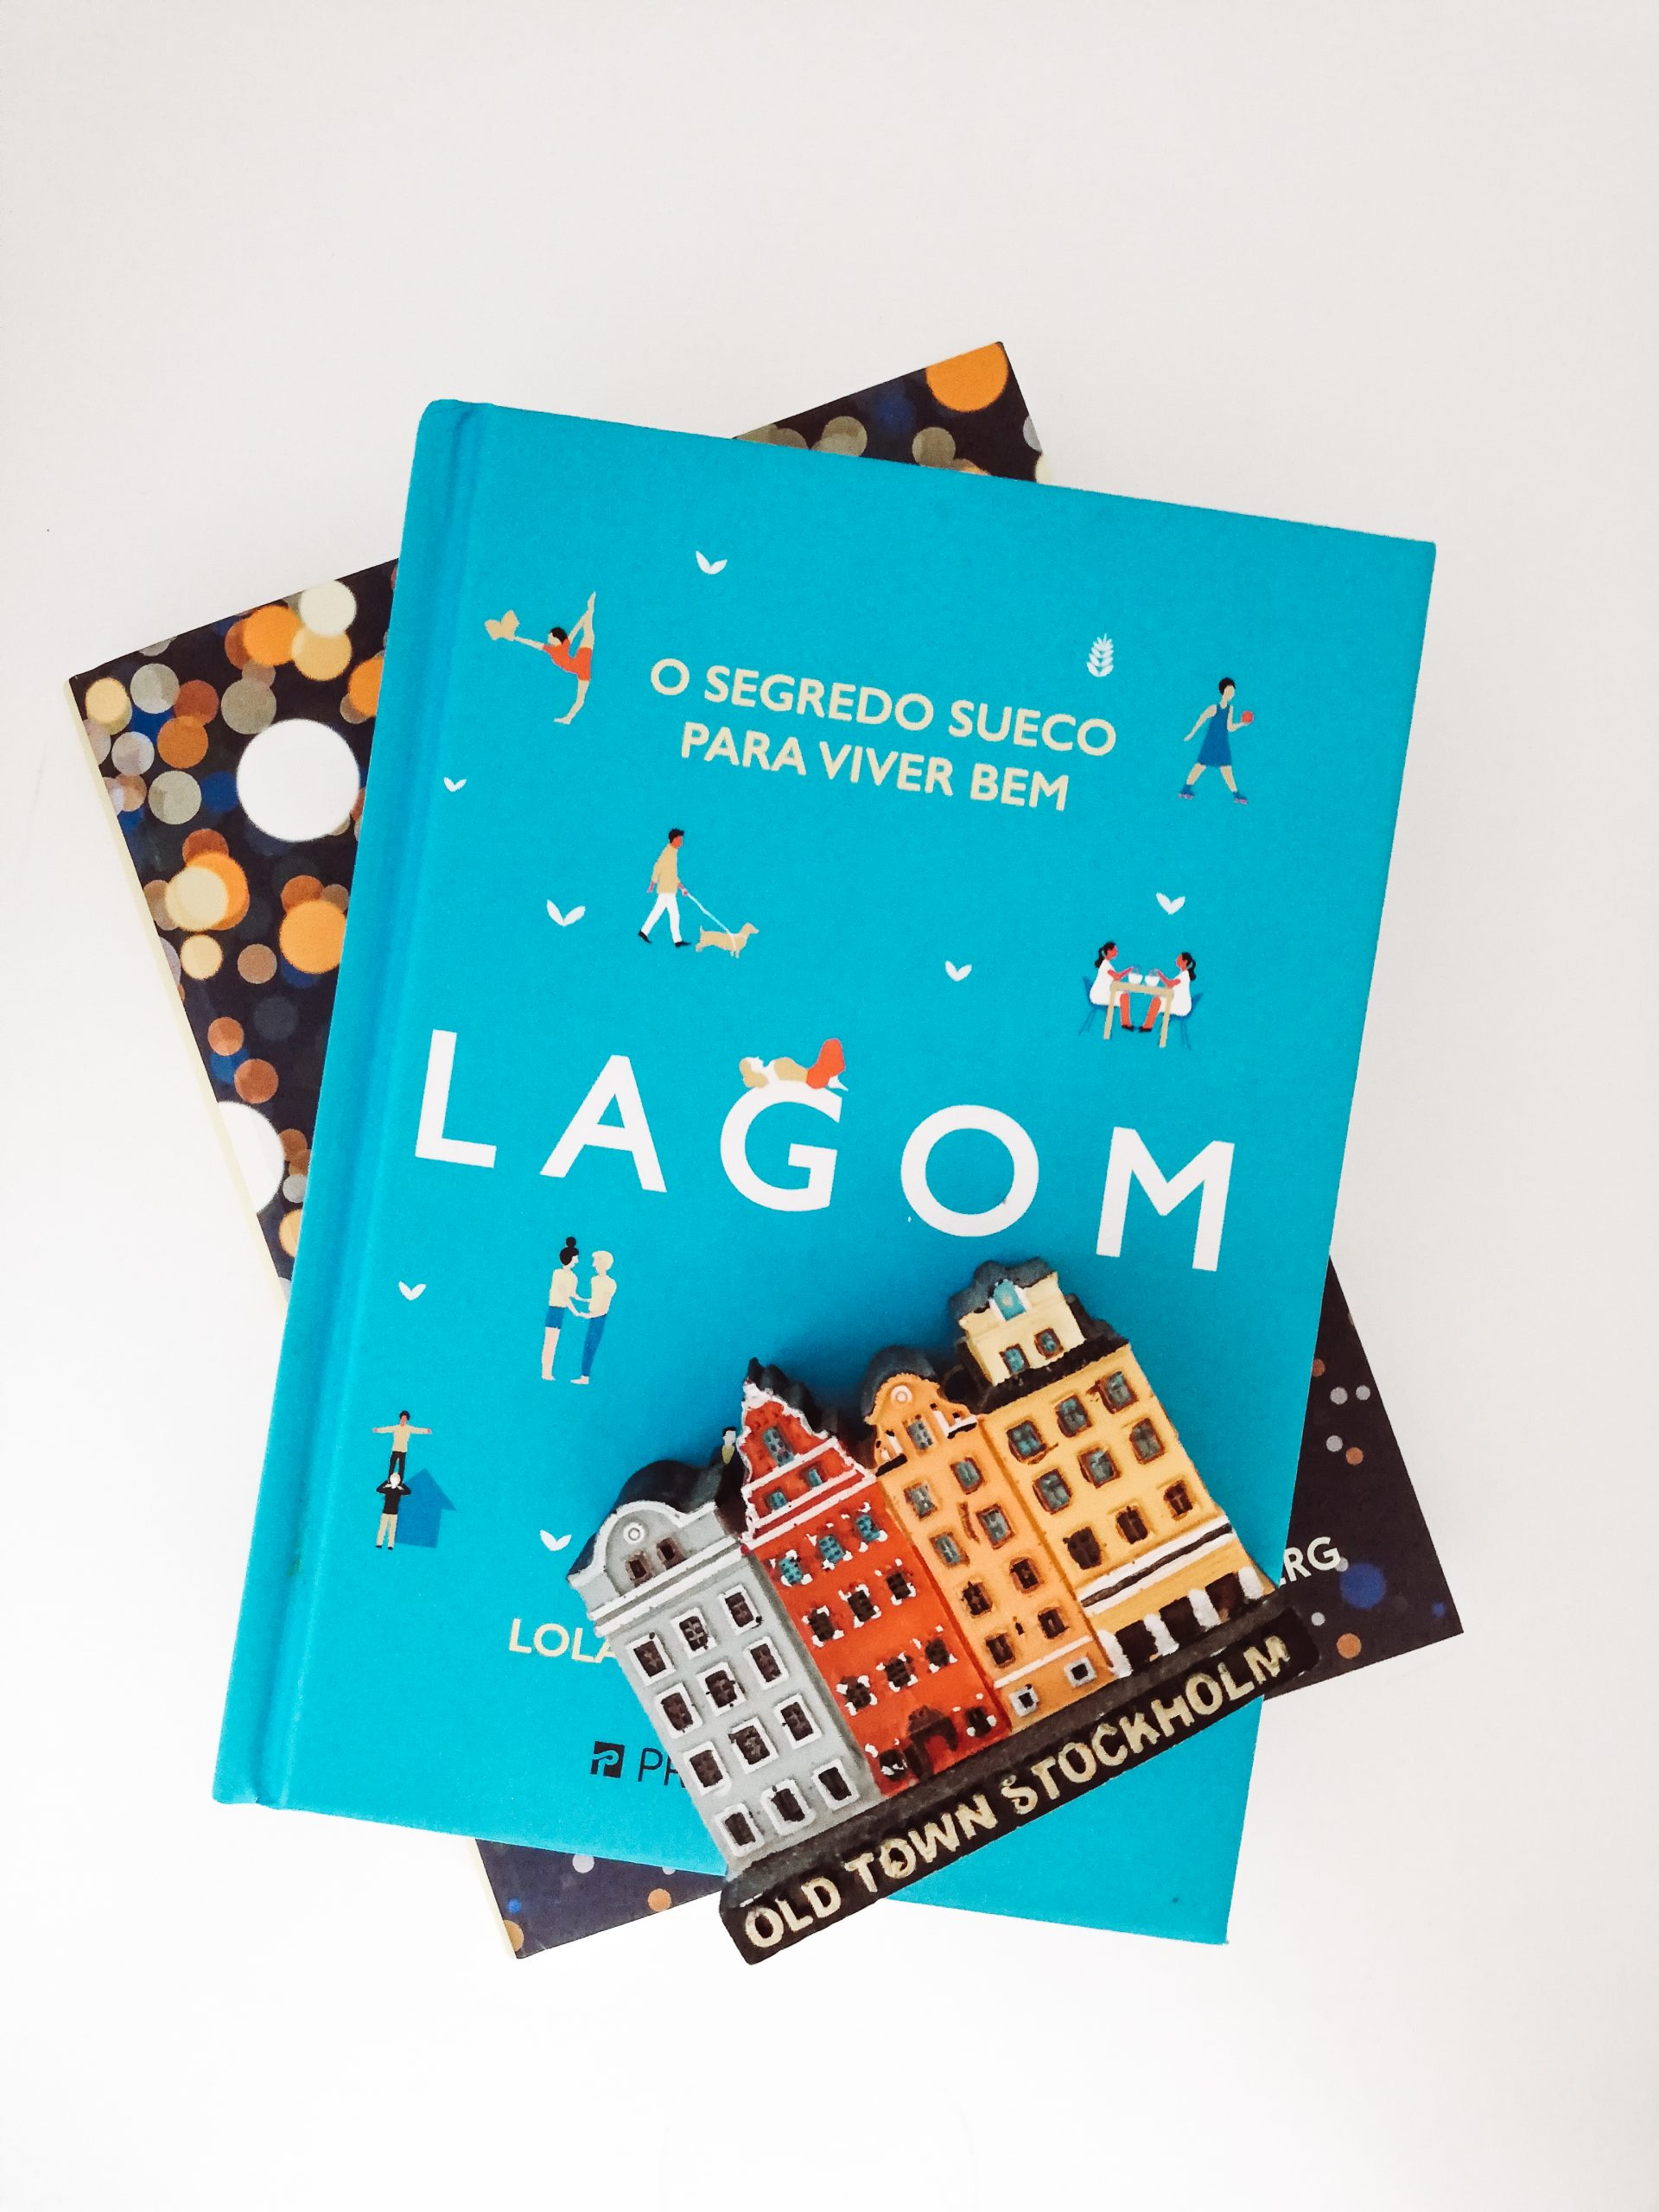 Lagom Hygge Lifestyle Meaning